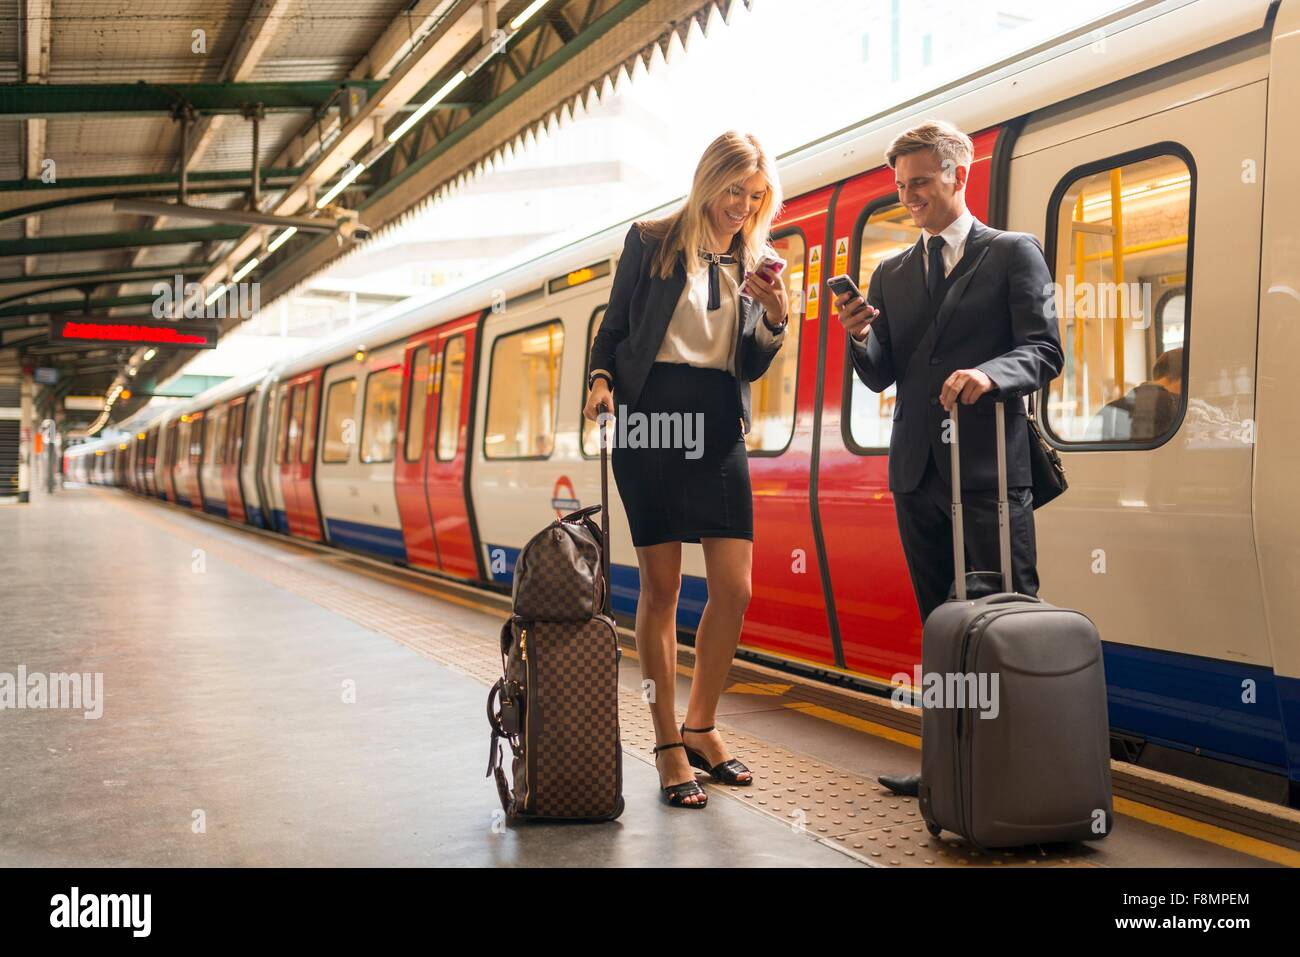 Businessman and businesswoman texting sur la plate-forme, station de métro, London, UK Photo Stock